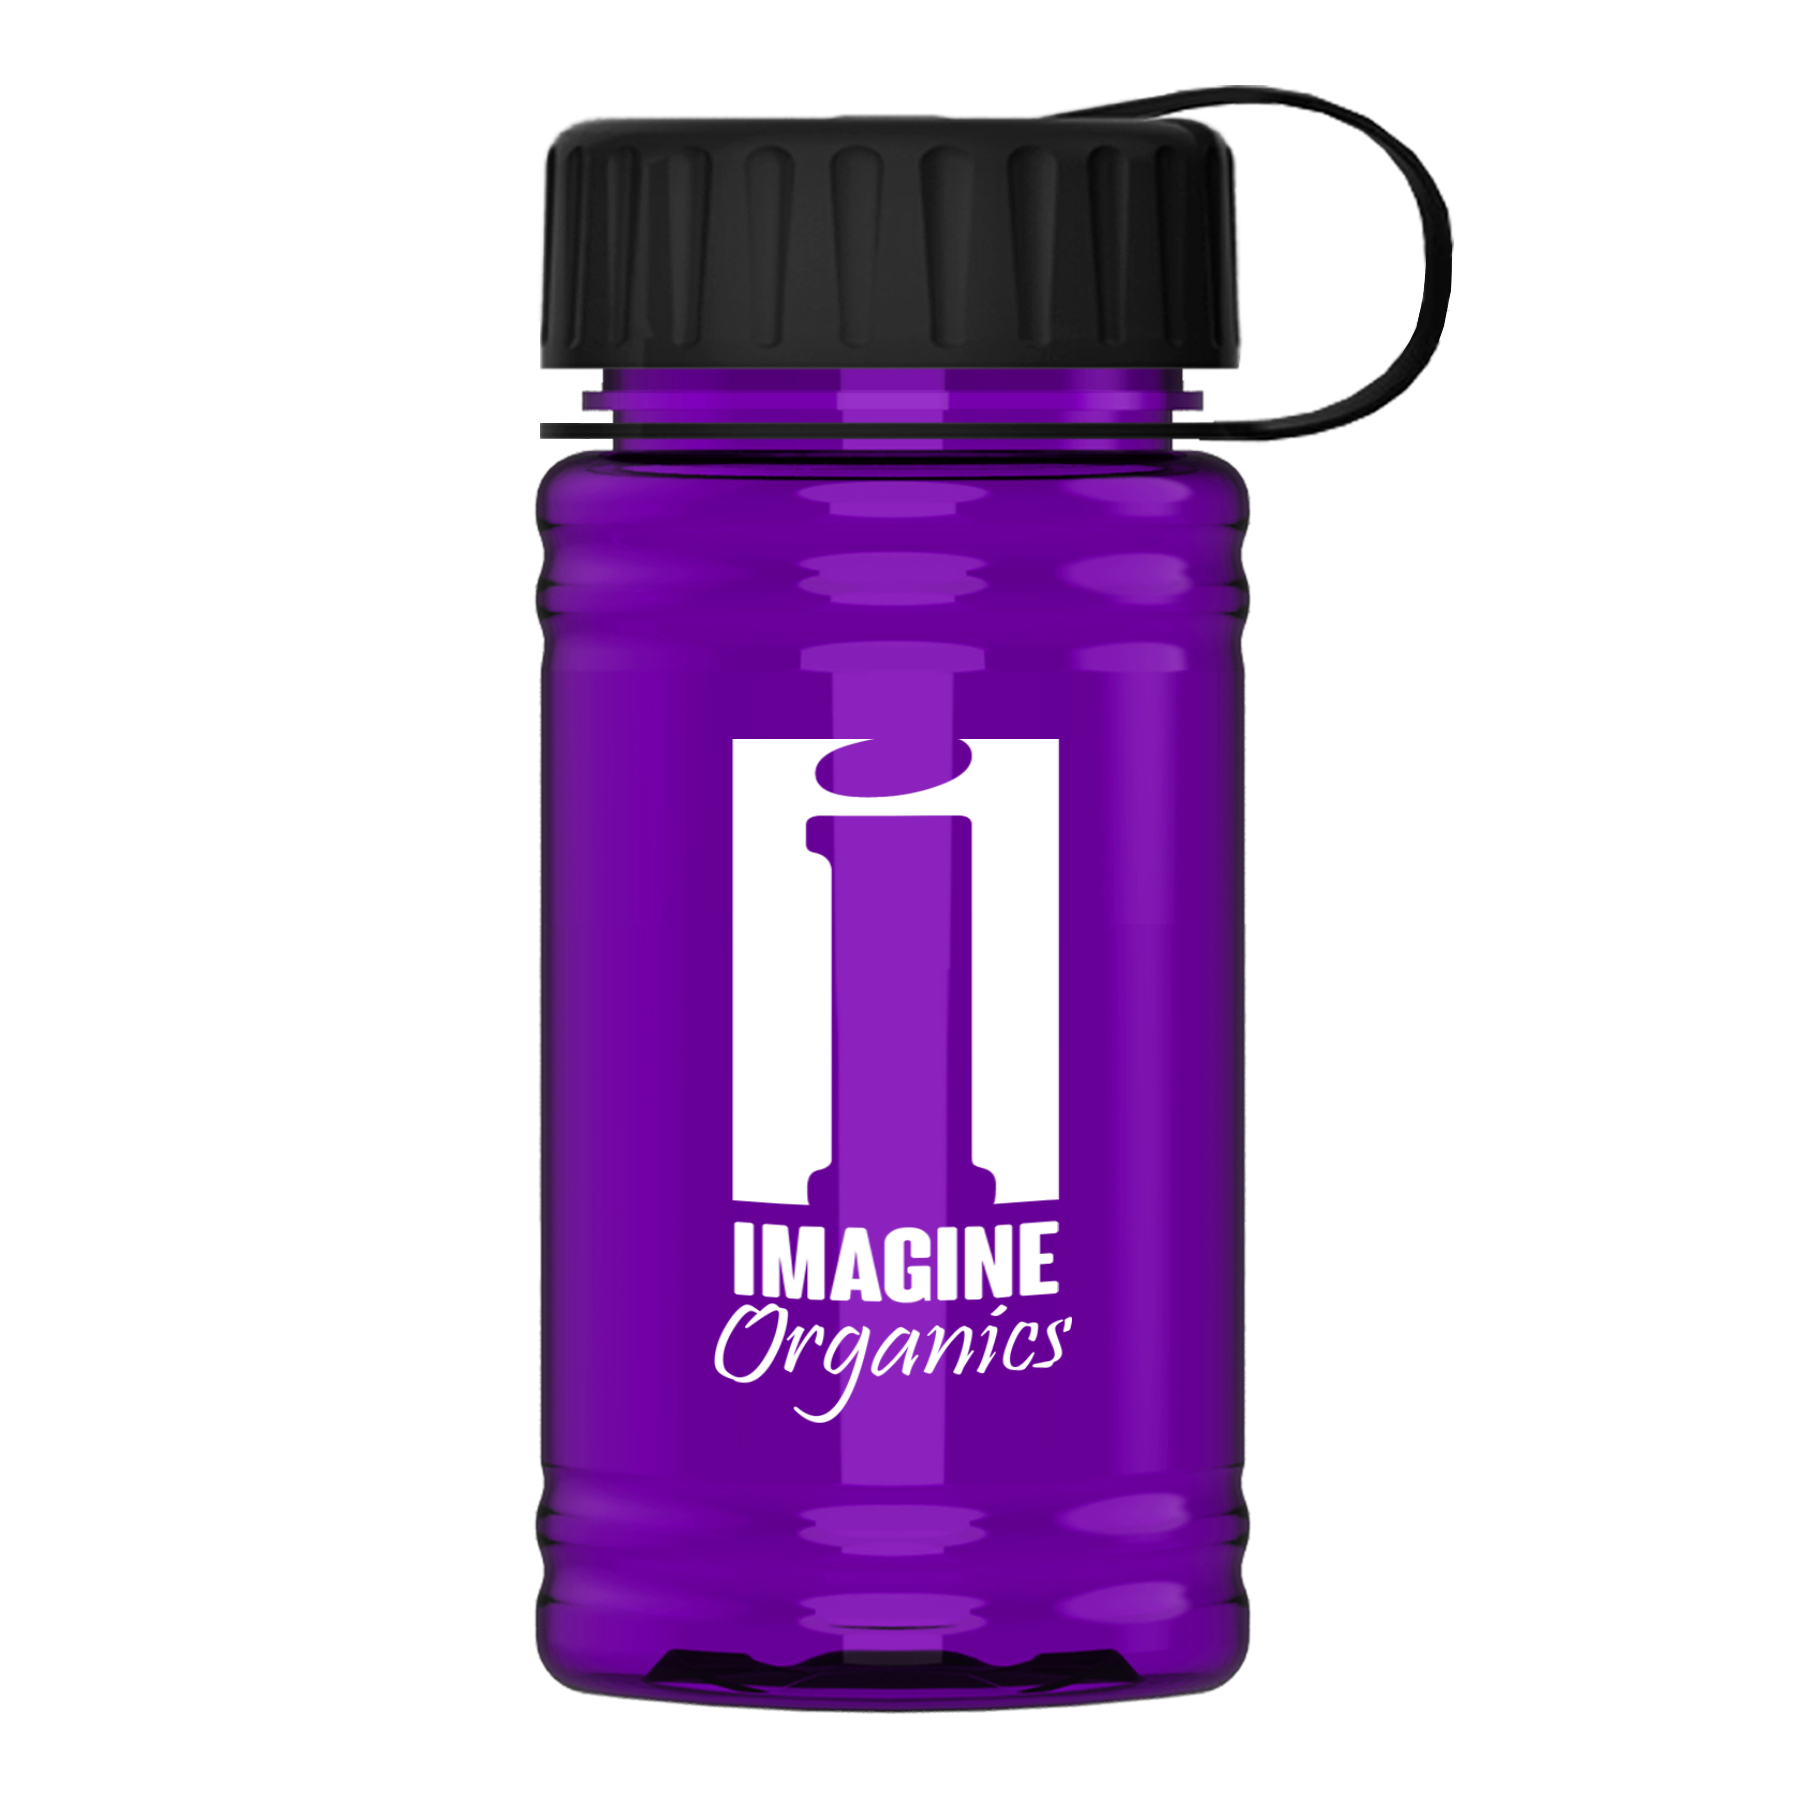 UpCycle - Mini 16 oz. rPet Sports Bottle With Tethered Lid